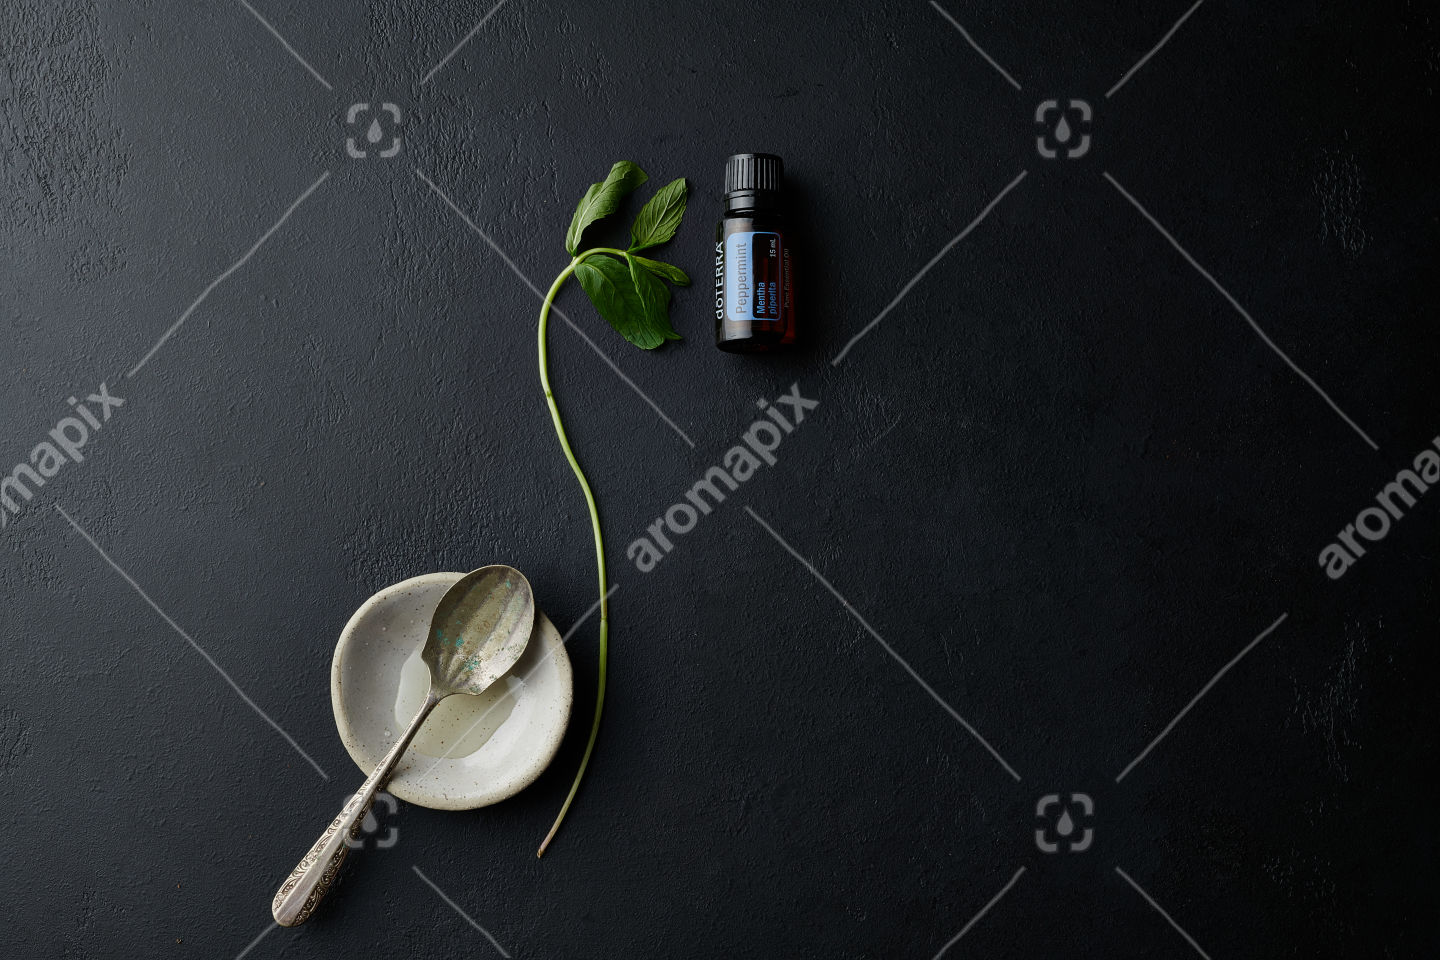 doTERRA Peppermint with utensils and a peppermint branch on black